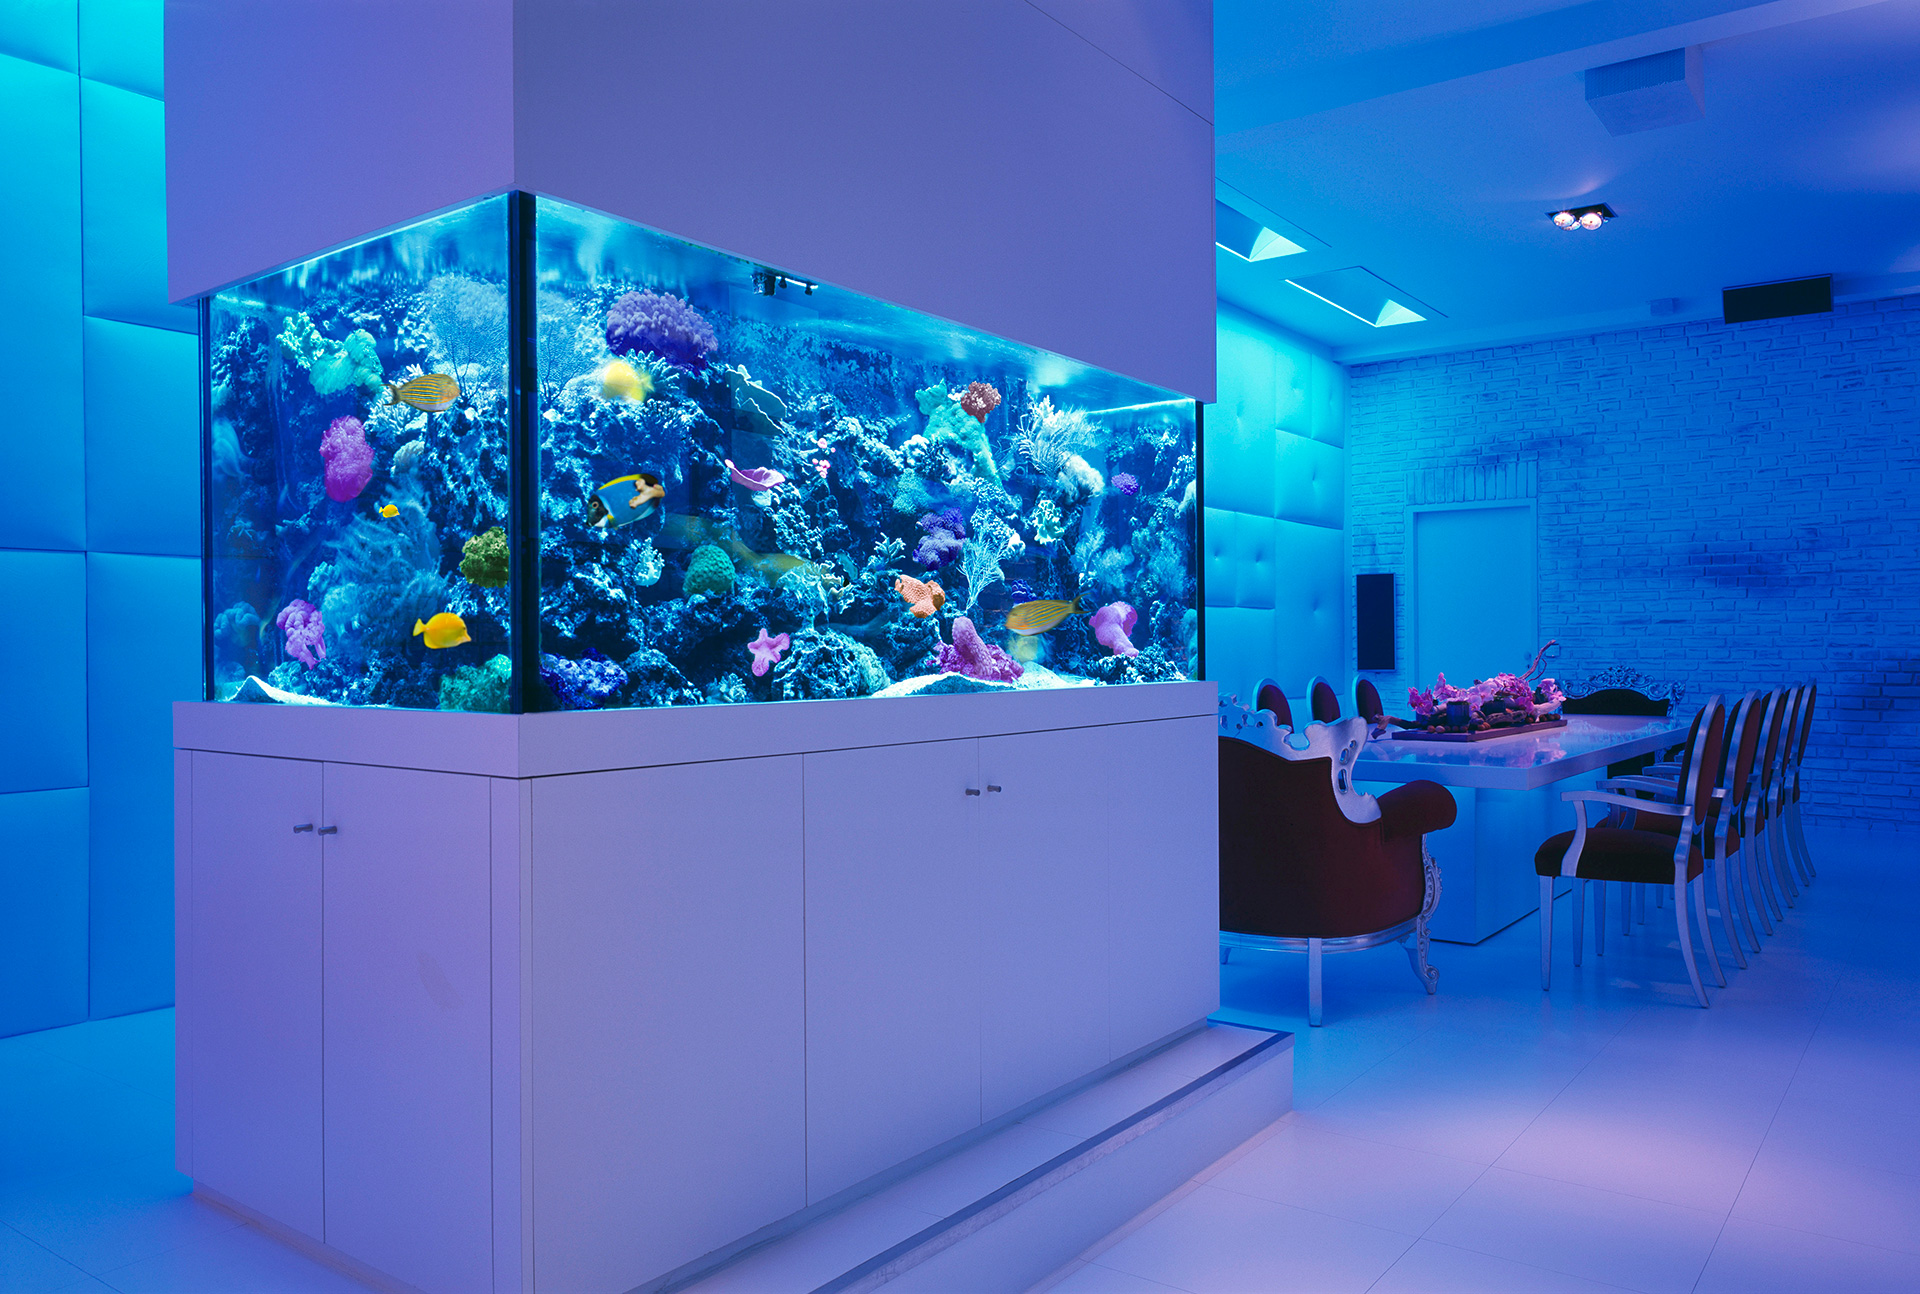 room 3 decorating ideas with aquarium - Fish Tank Designs My Home